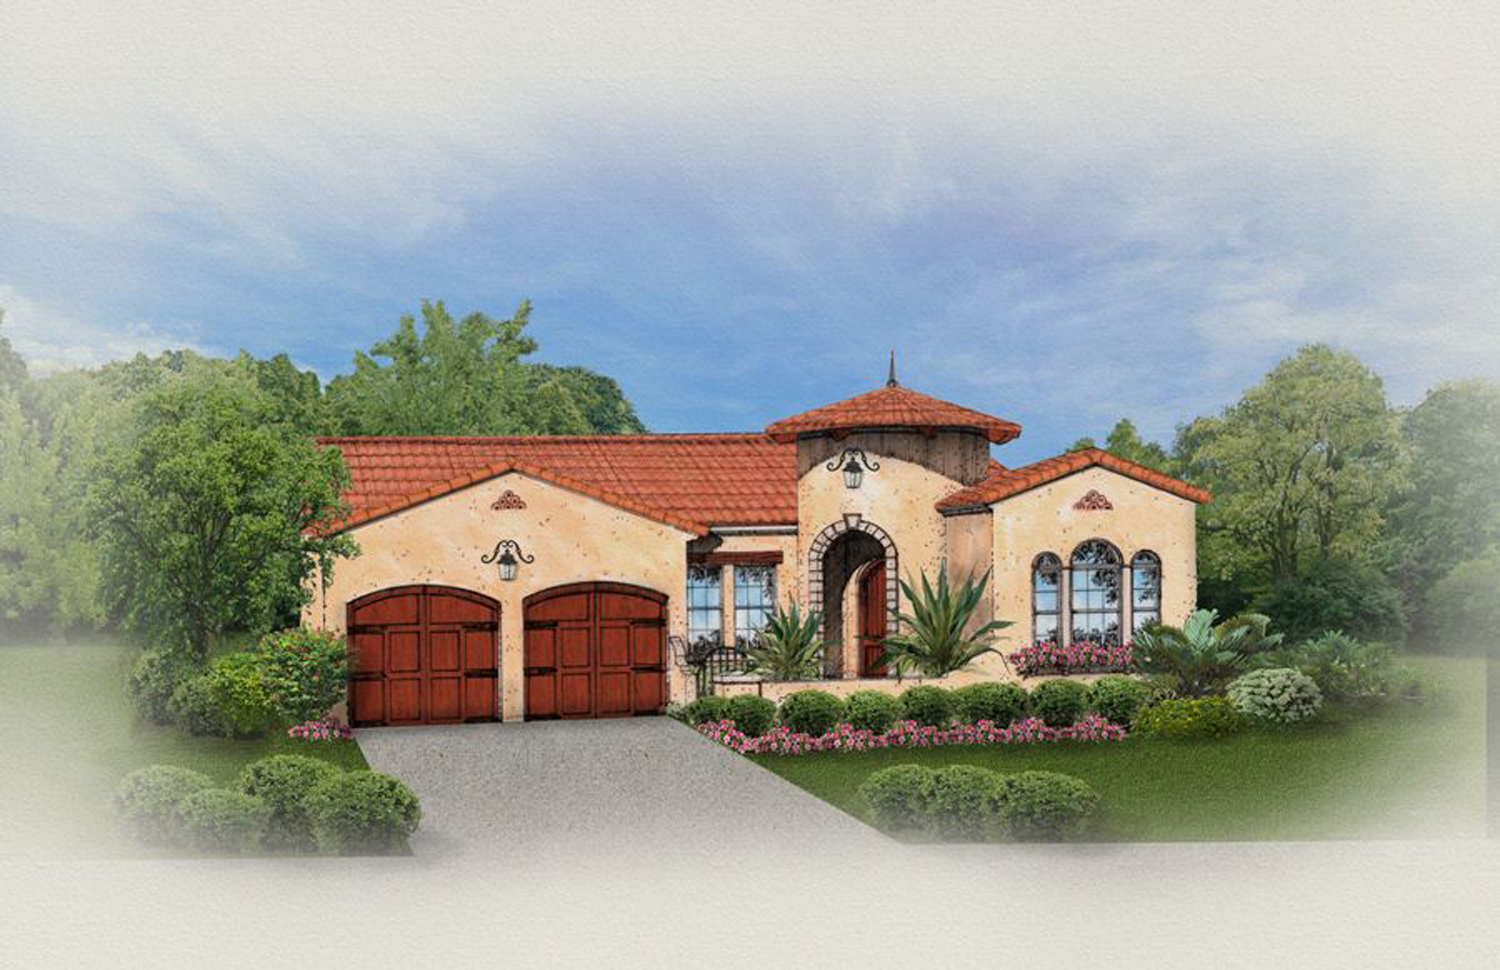 Mediterranean Home With Front Courtyard - 82019ka